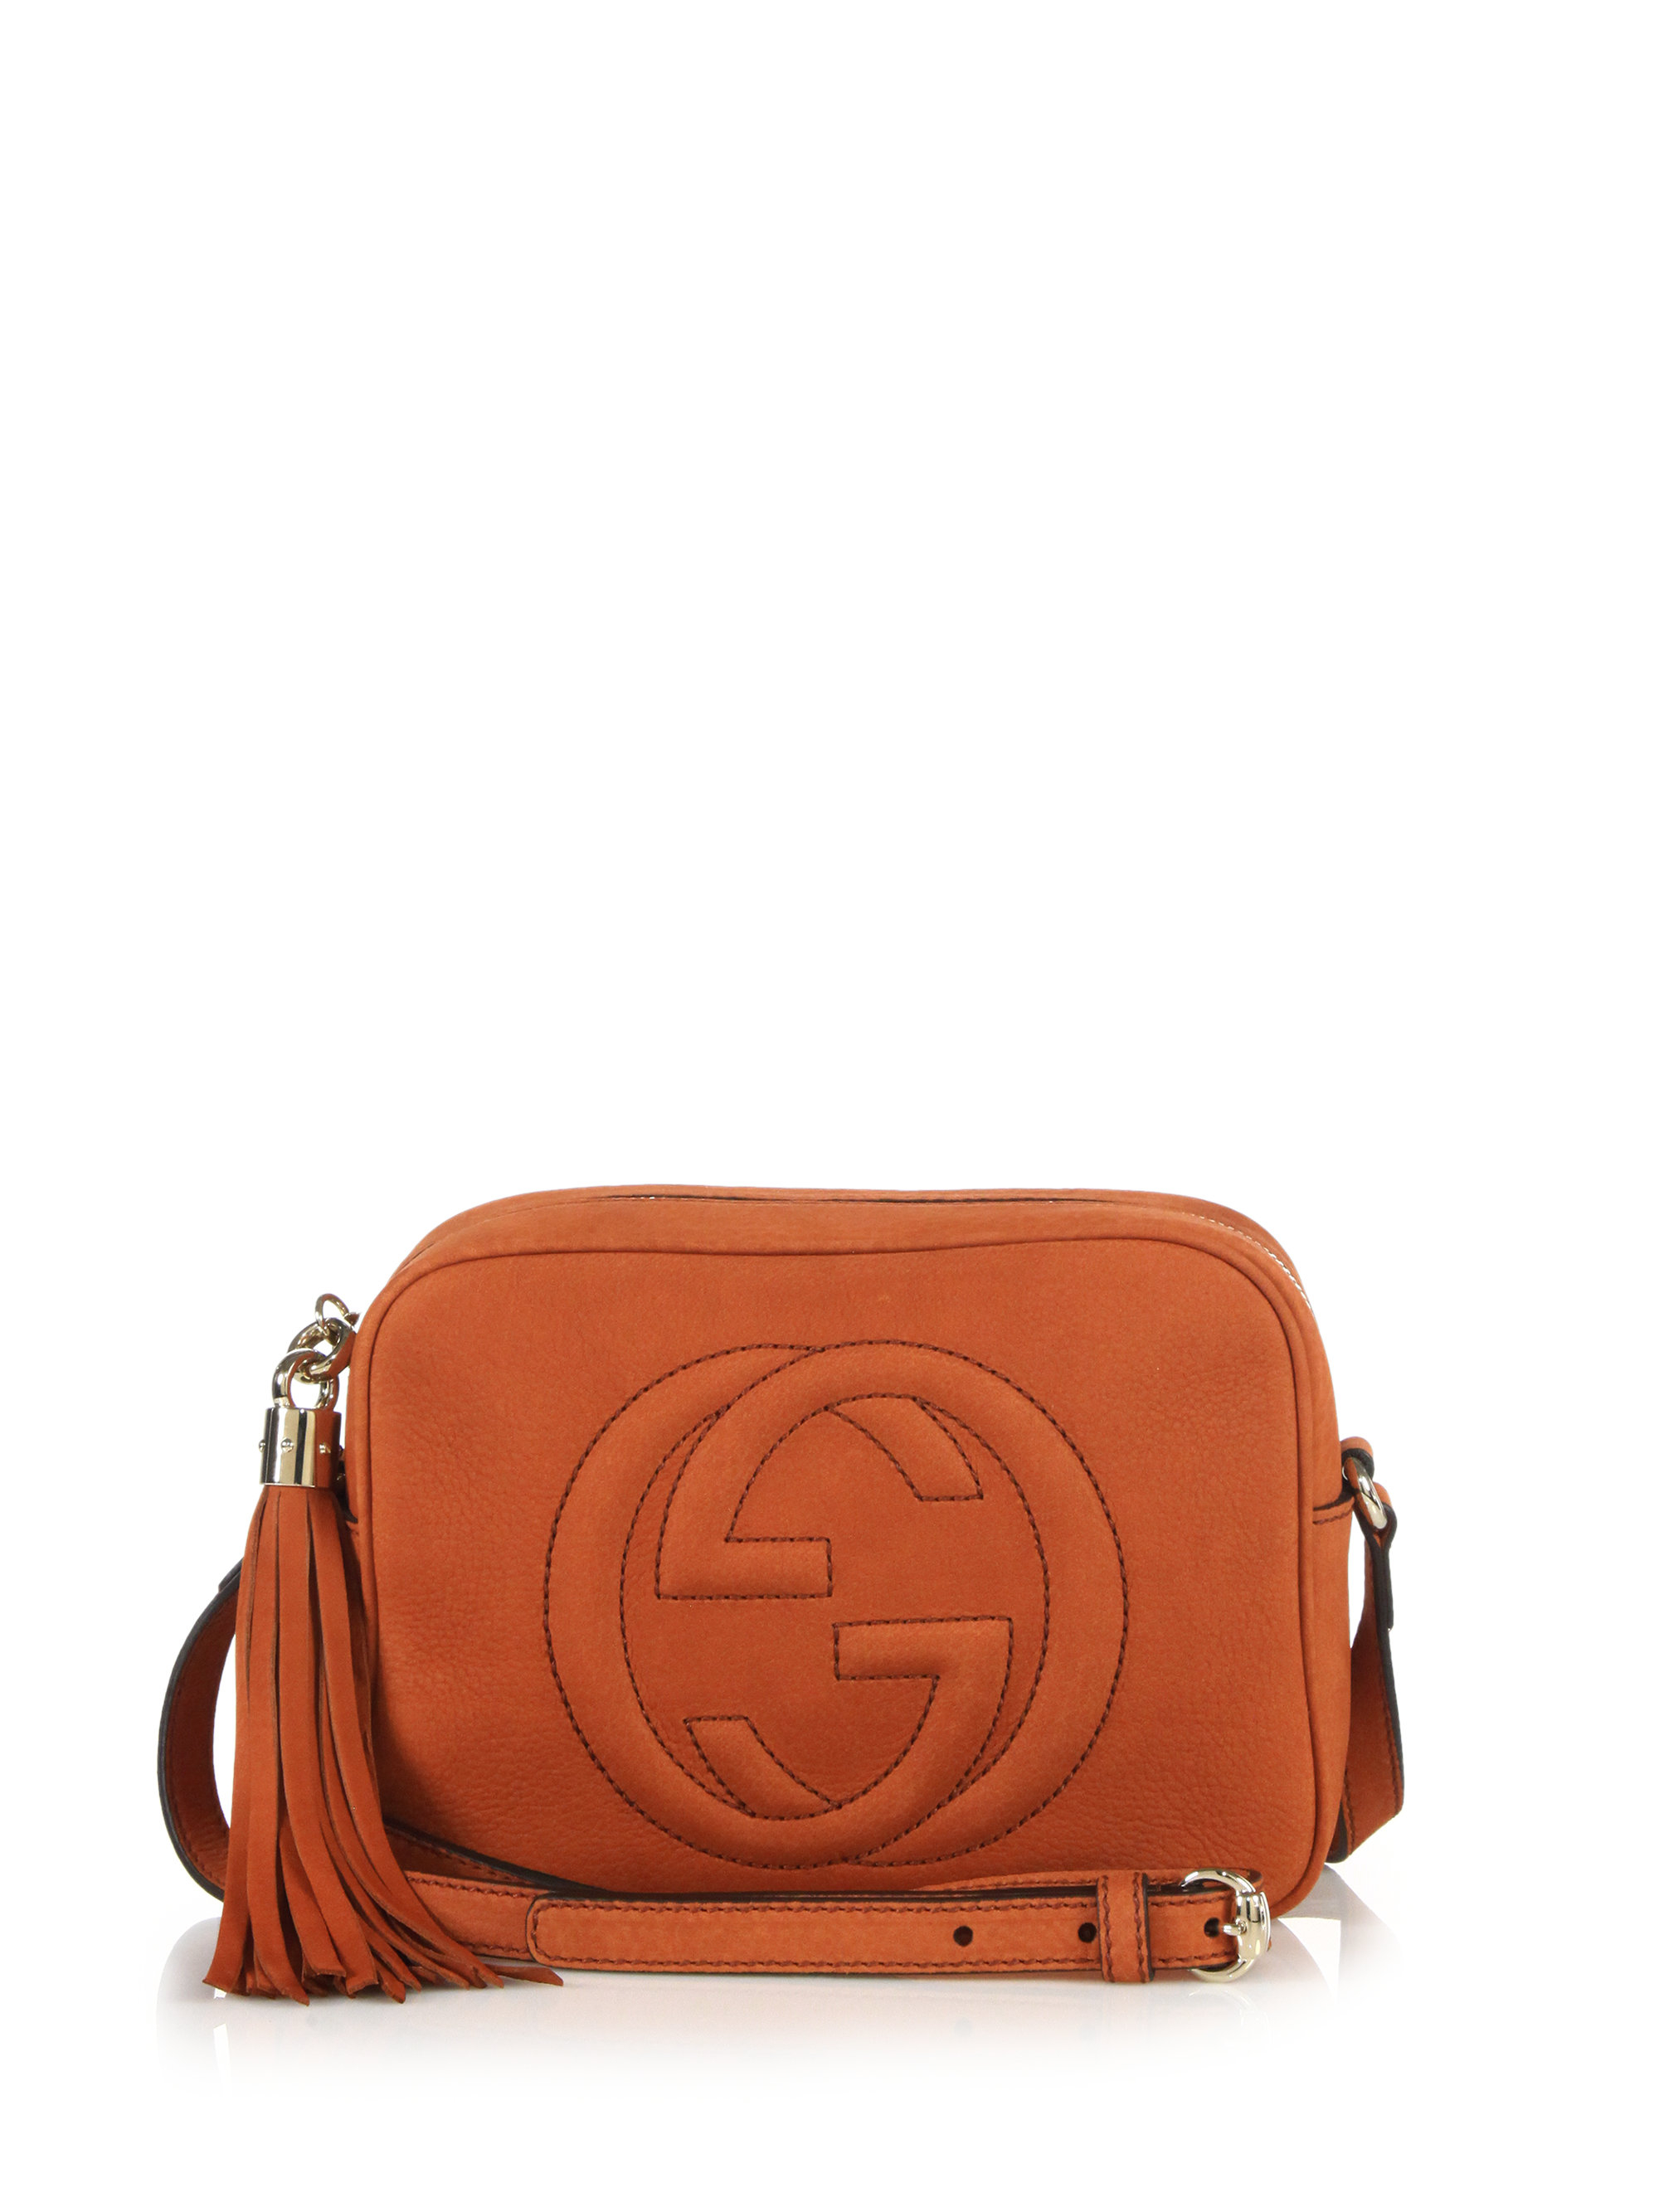 d7d3b82e4537 Gallery. Previously sold at  Saks Fifth Avenue · Women s Gucci Soho Bag